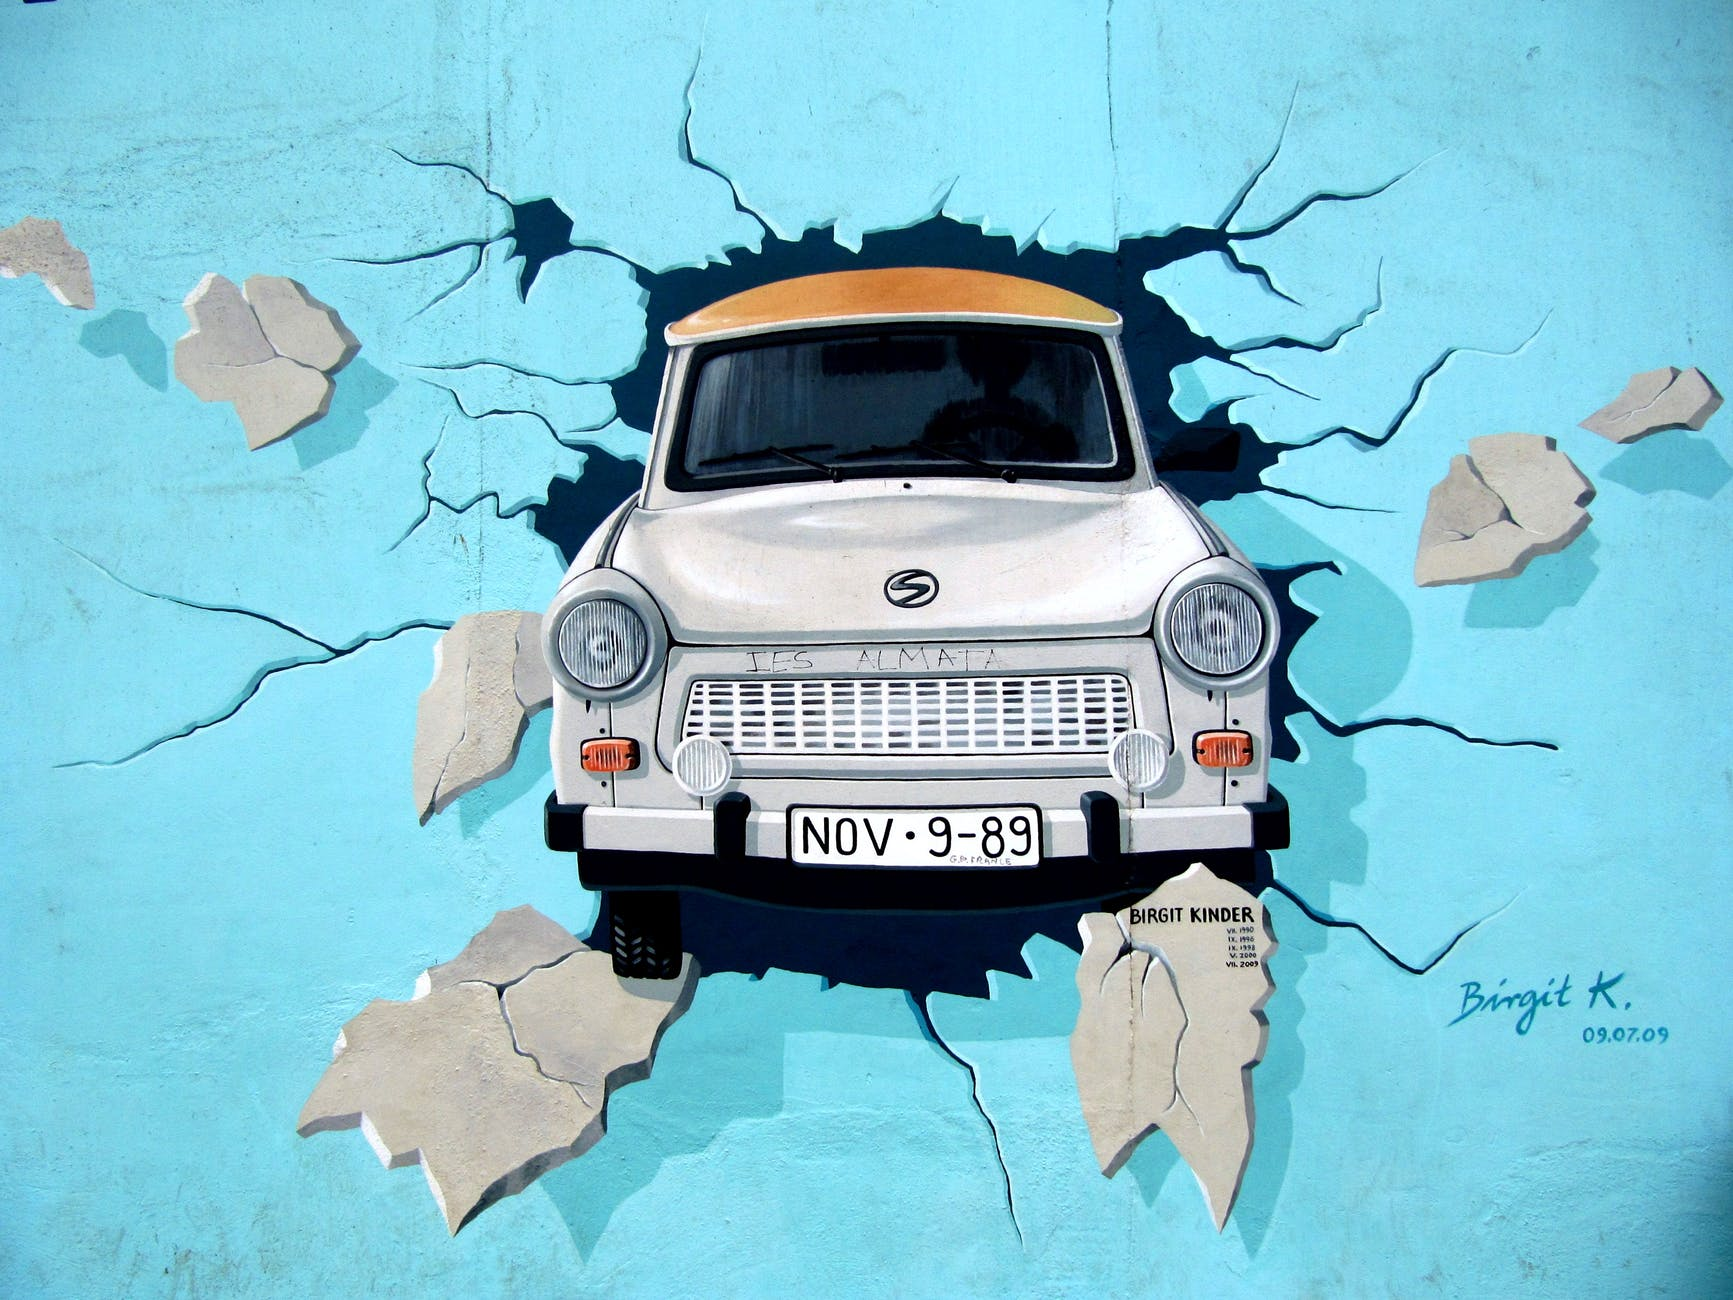 graffiti-berlin-wall-wall-trabi.jpg